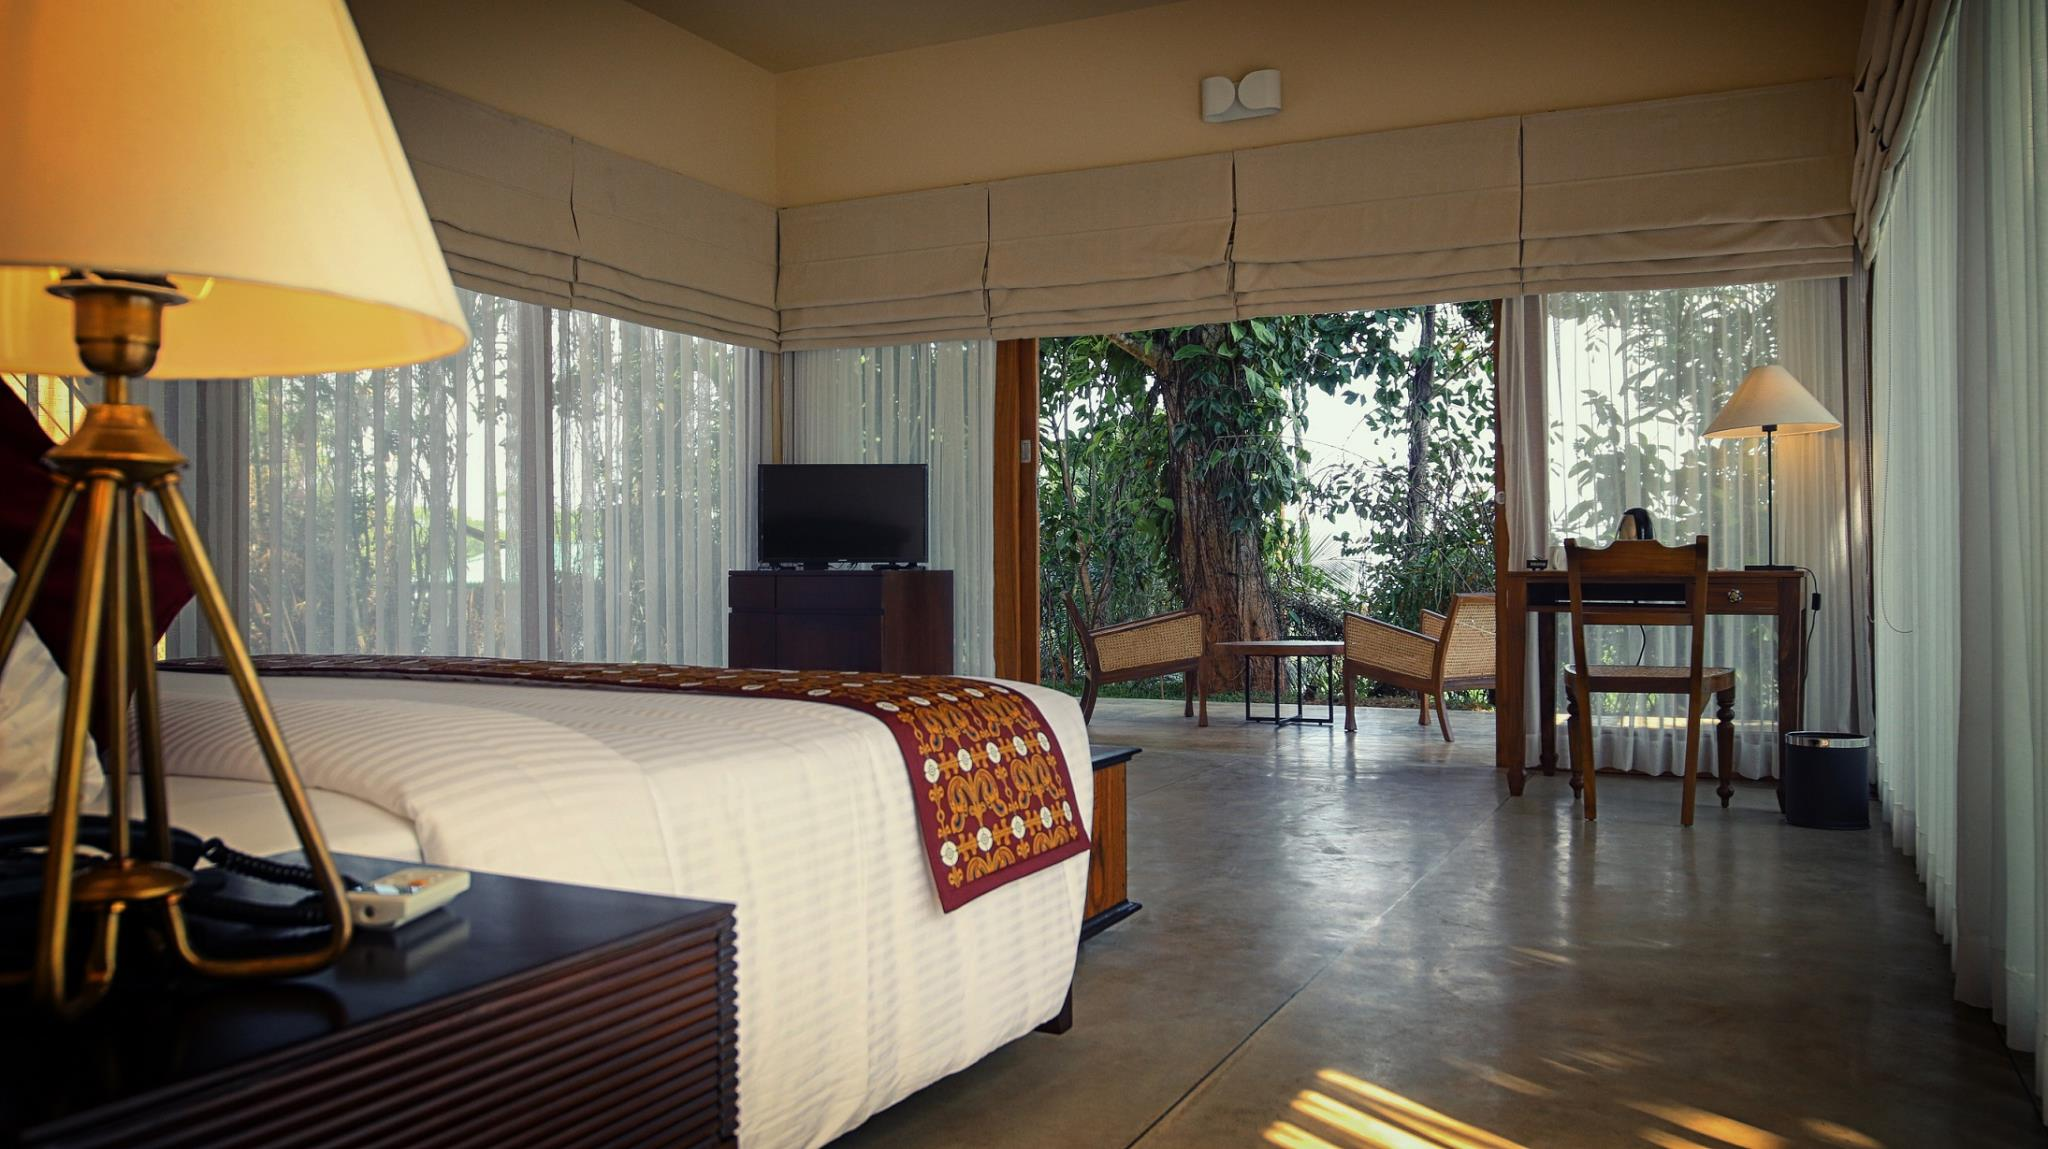 Accommodation in Kandy